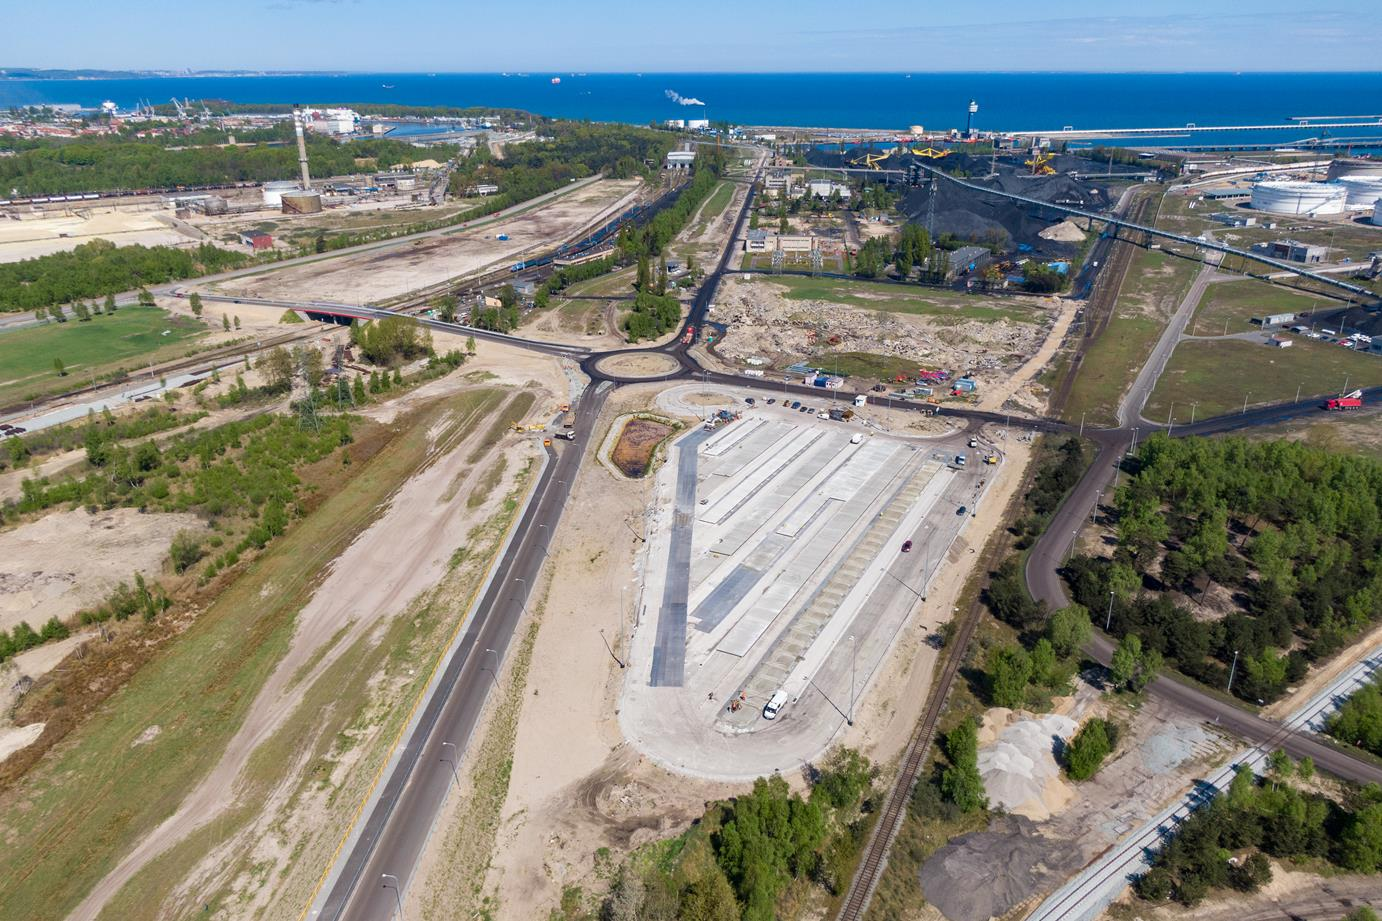 The investment in the Port Gdańsk is already in its final stage